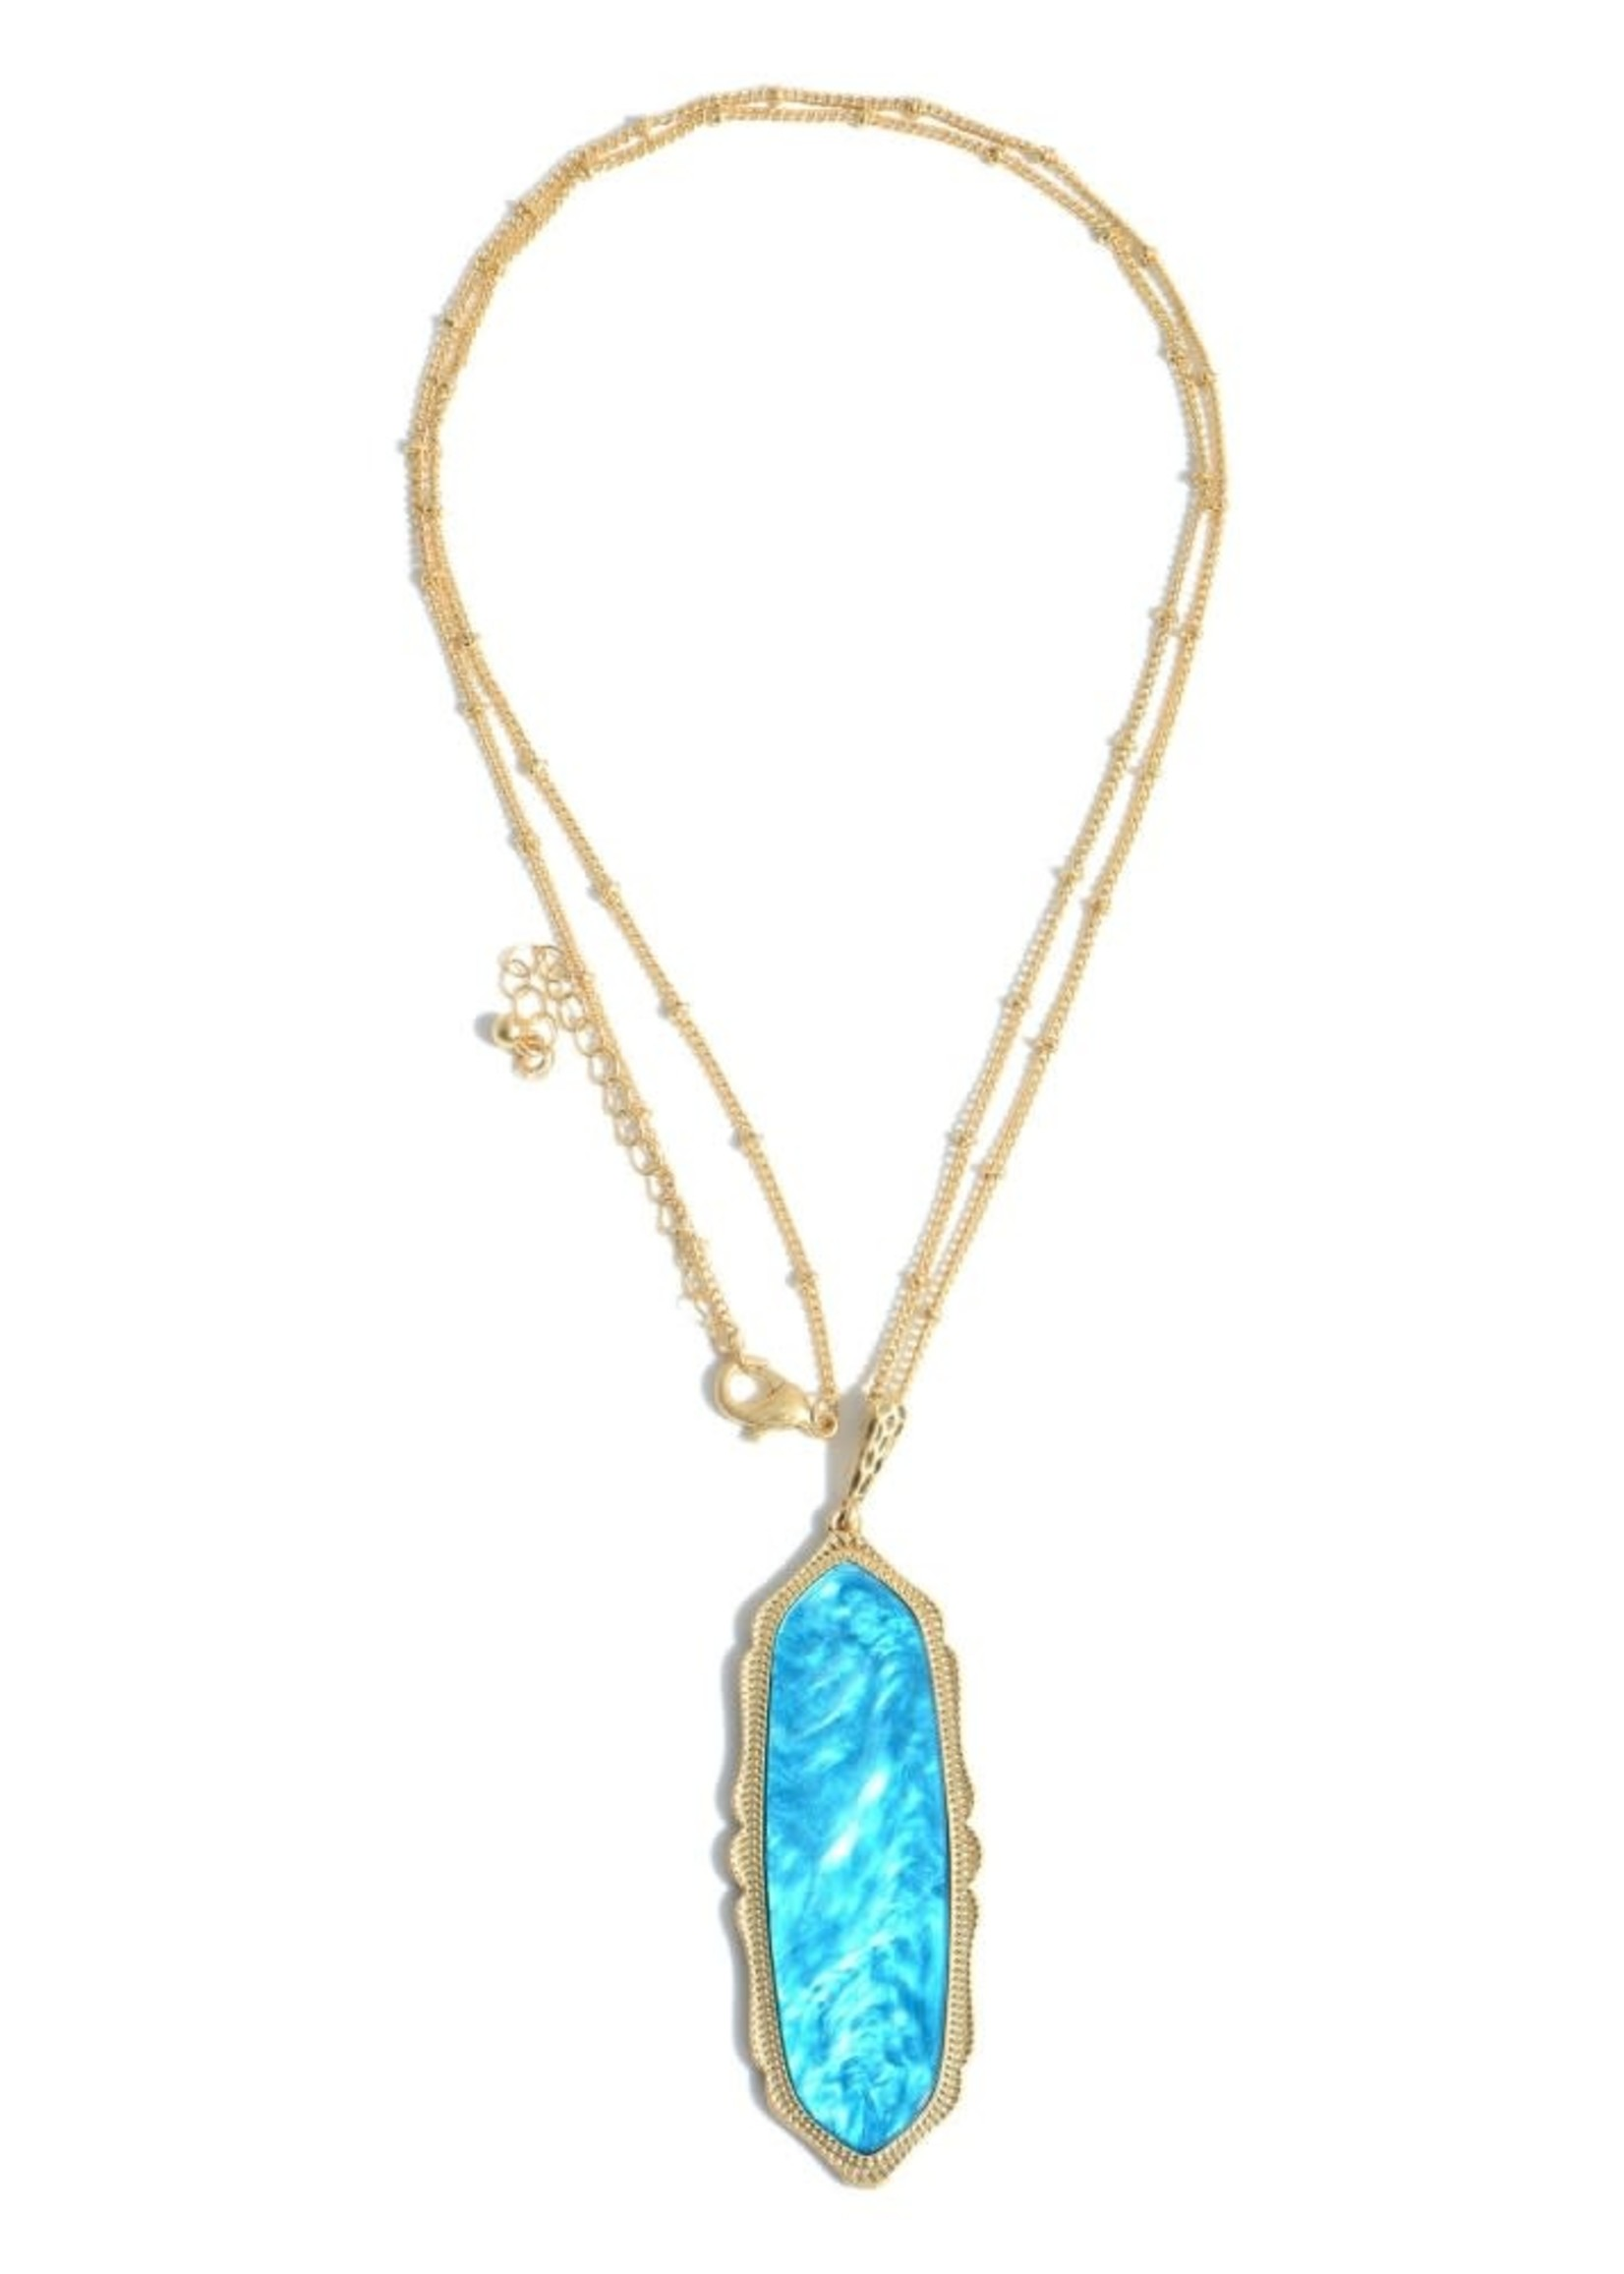 Turquoise Glass Moroccan Pendant Necklace